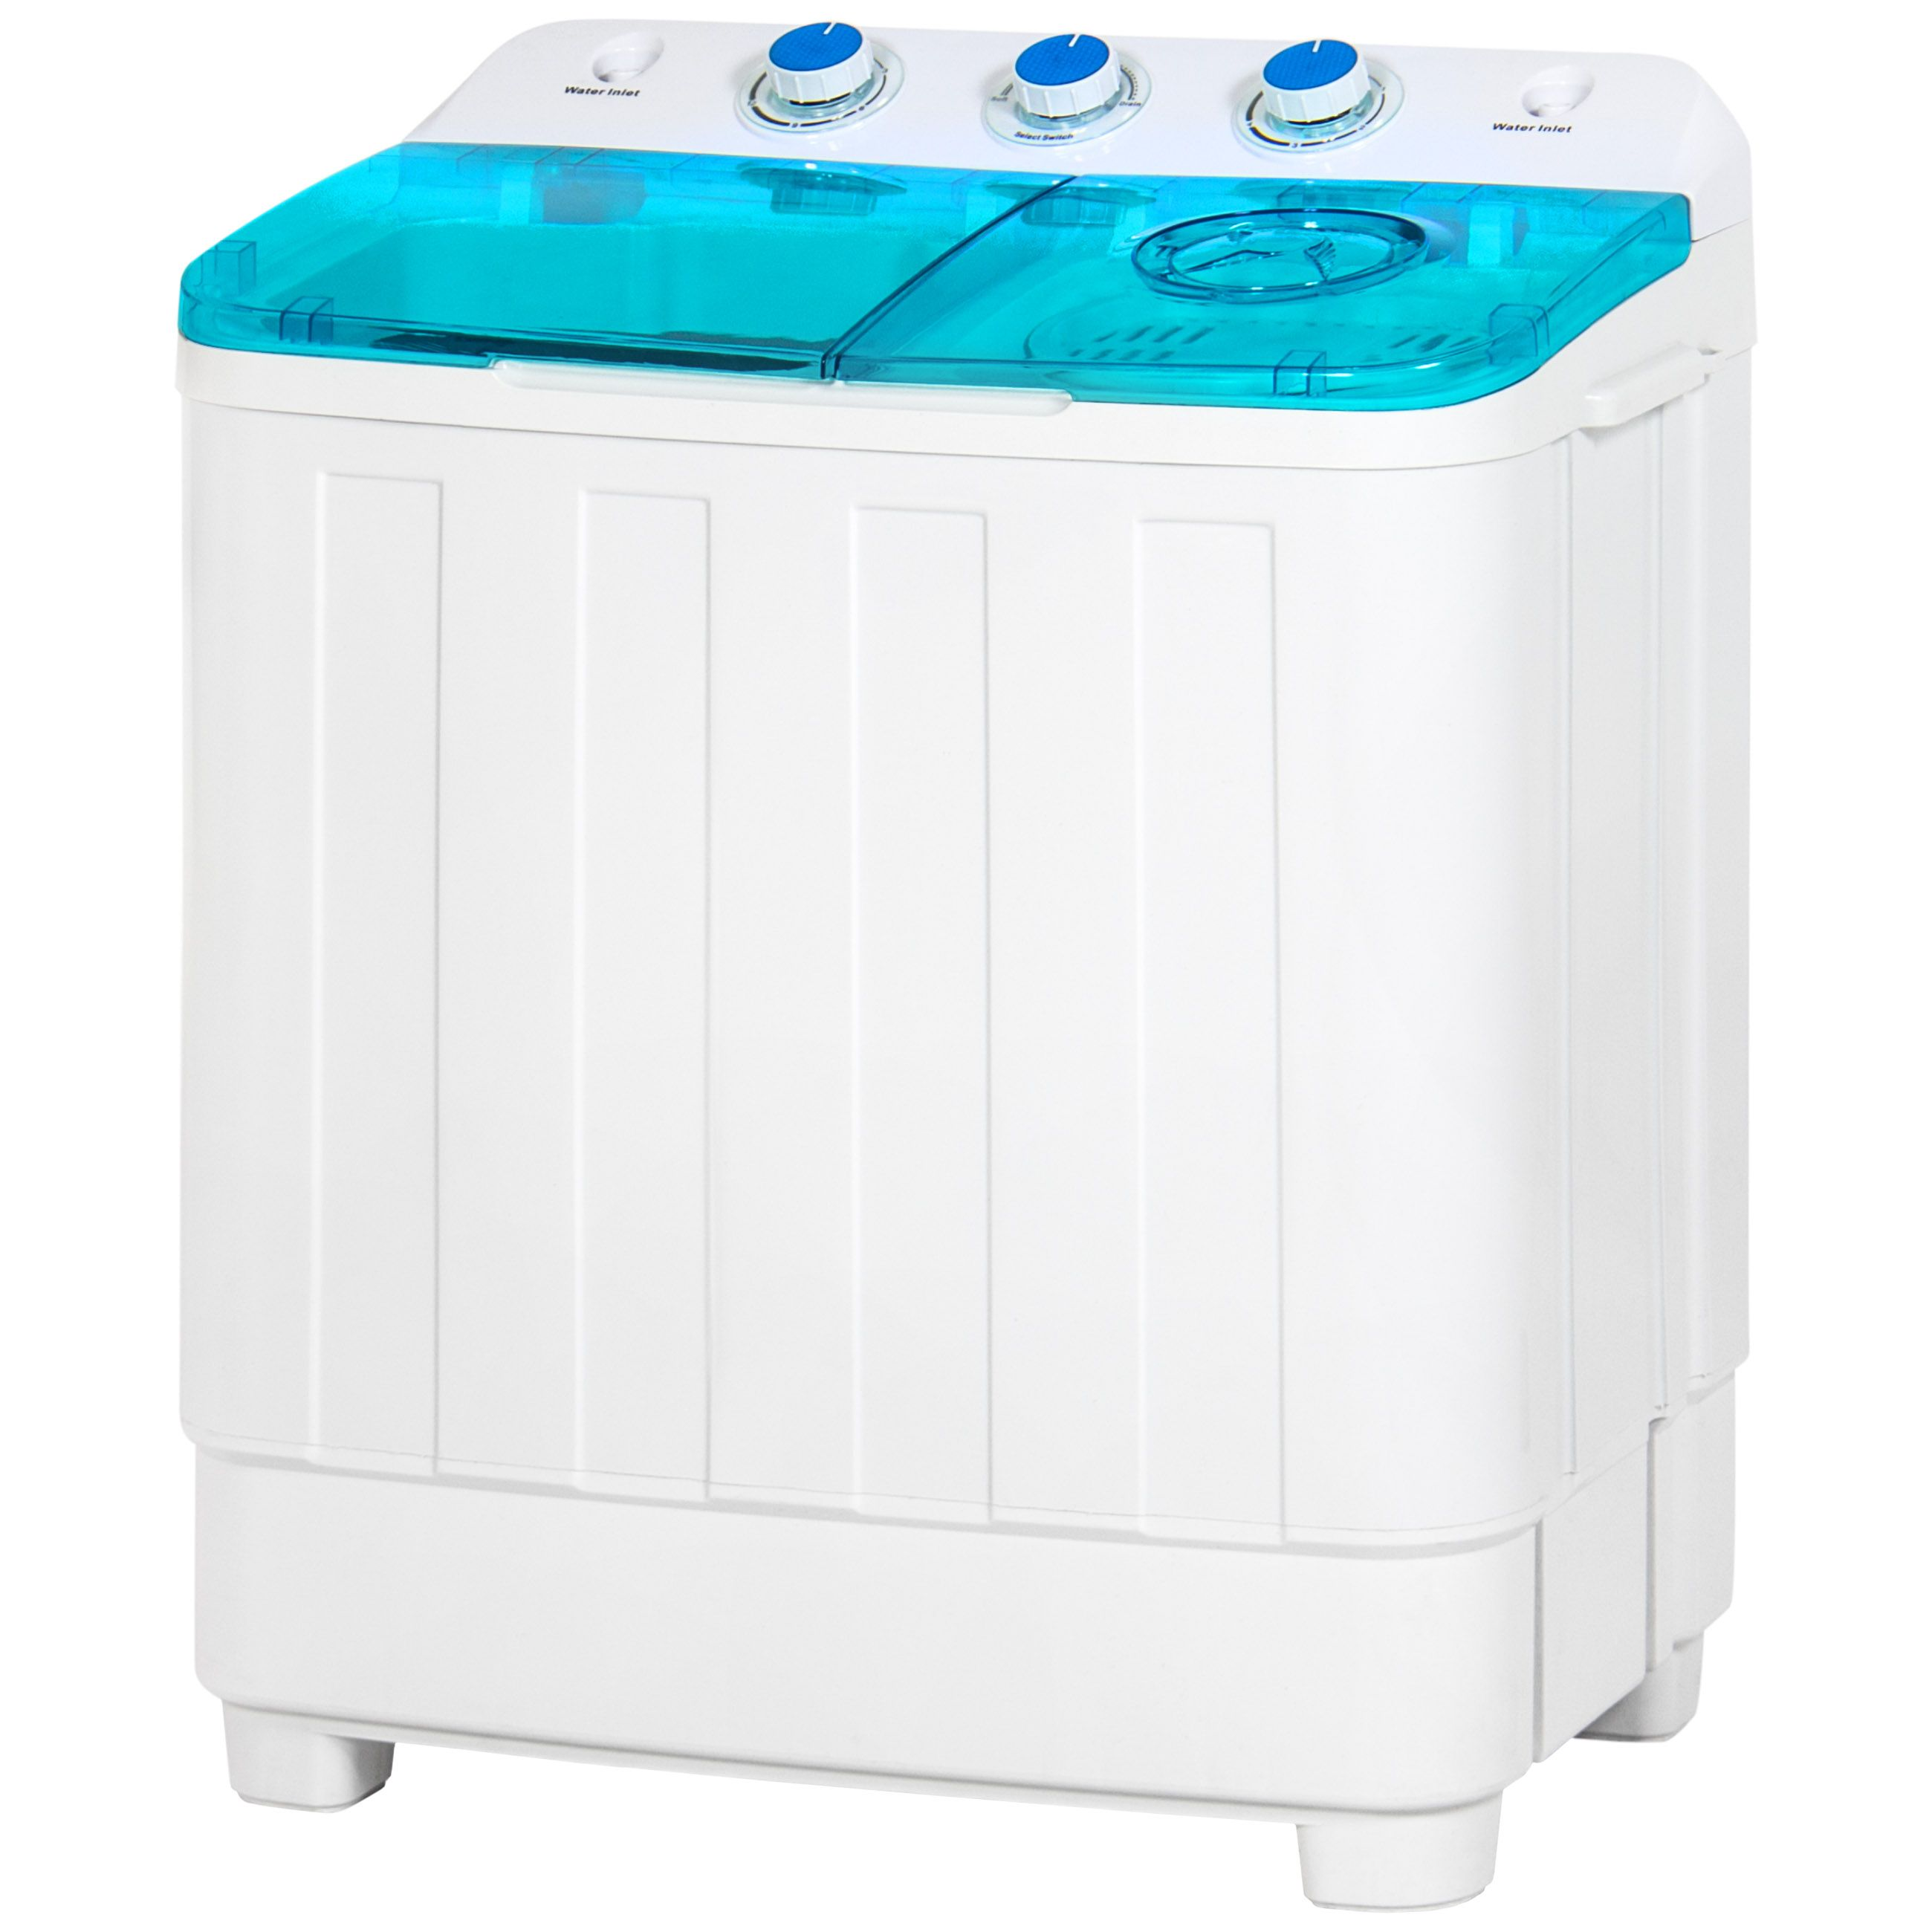 Best Choice Products 12 Lbs Portable Washer Dryer Combo Walmart Com Compact Washing Machine Portable Washer Washing Machine Washer